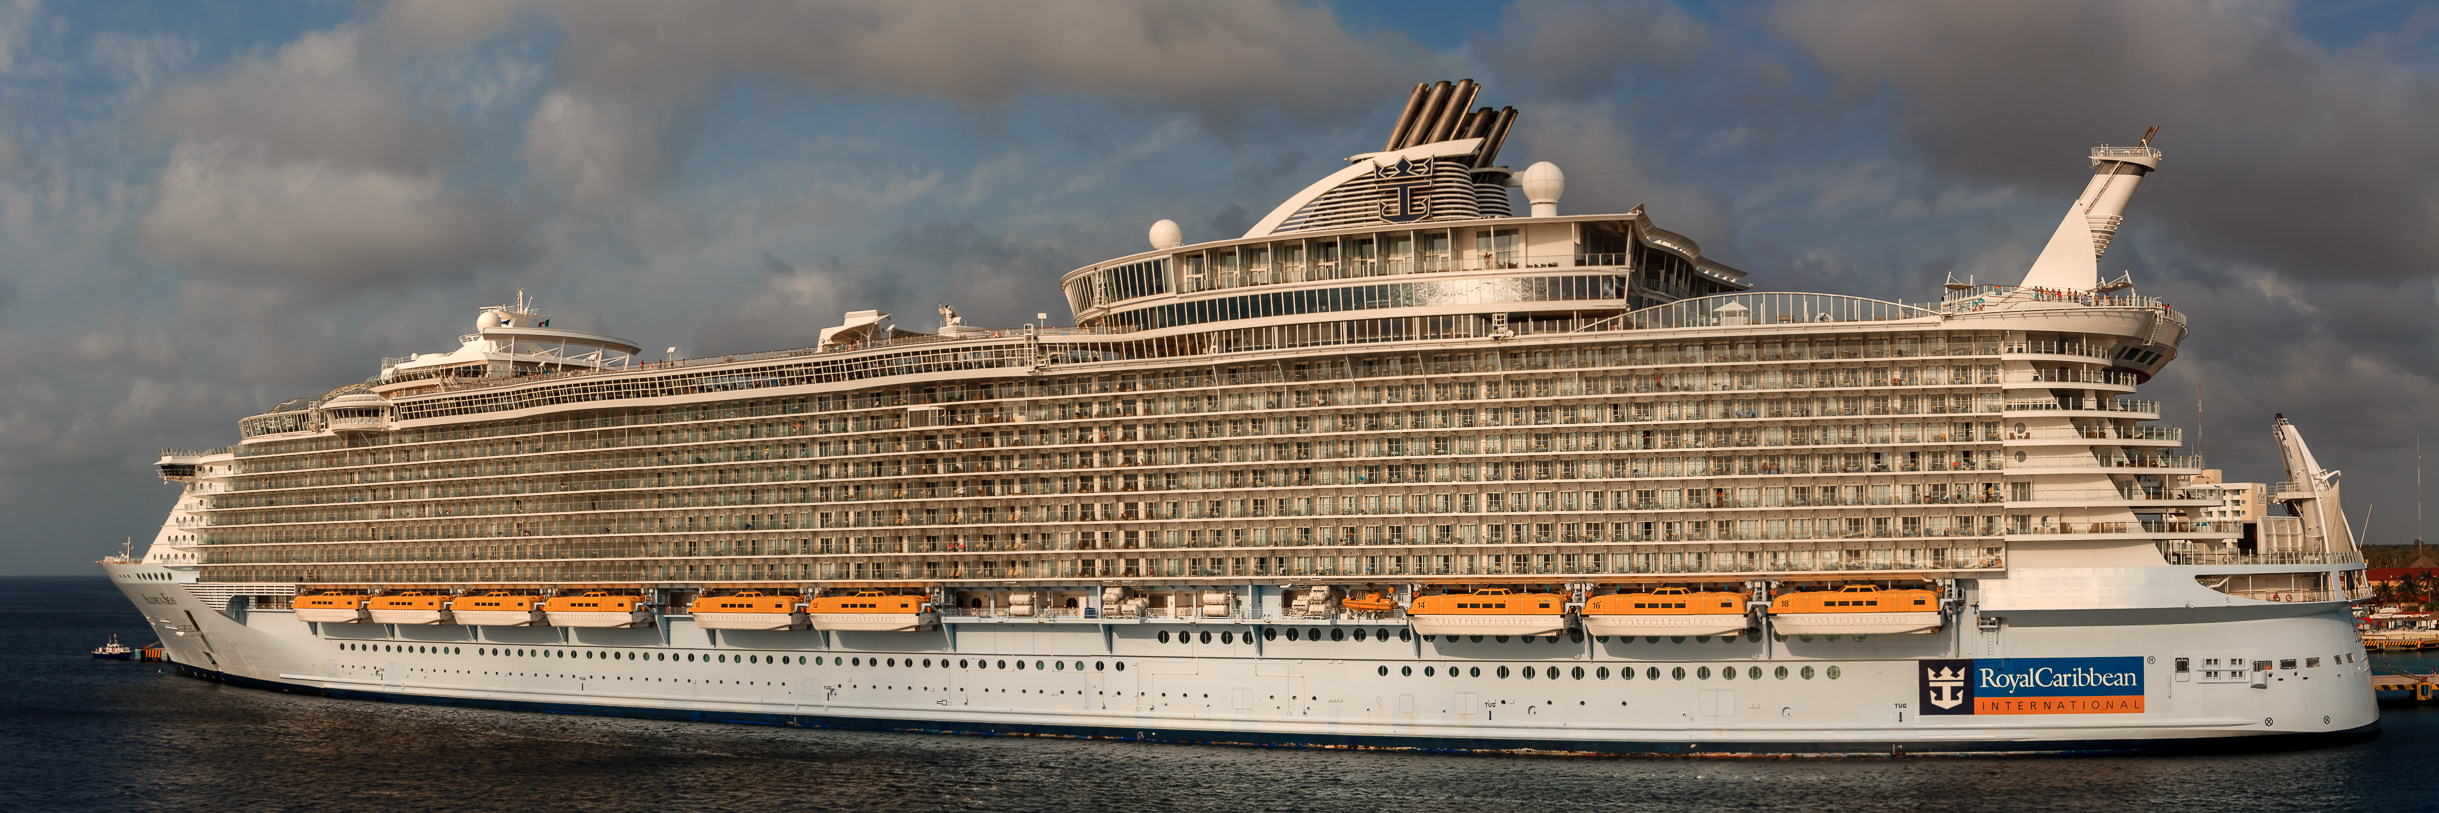 The Royal Caribbean cruise shipAllure of the Seas, docked in Cozumel, Mexico.